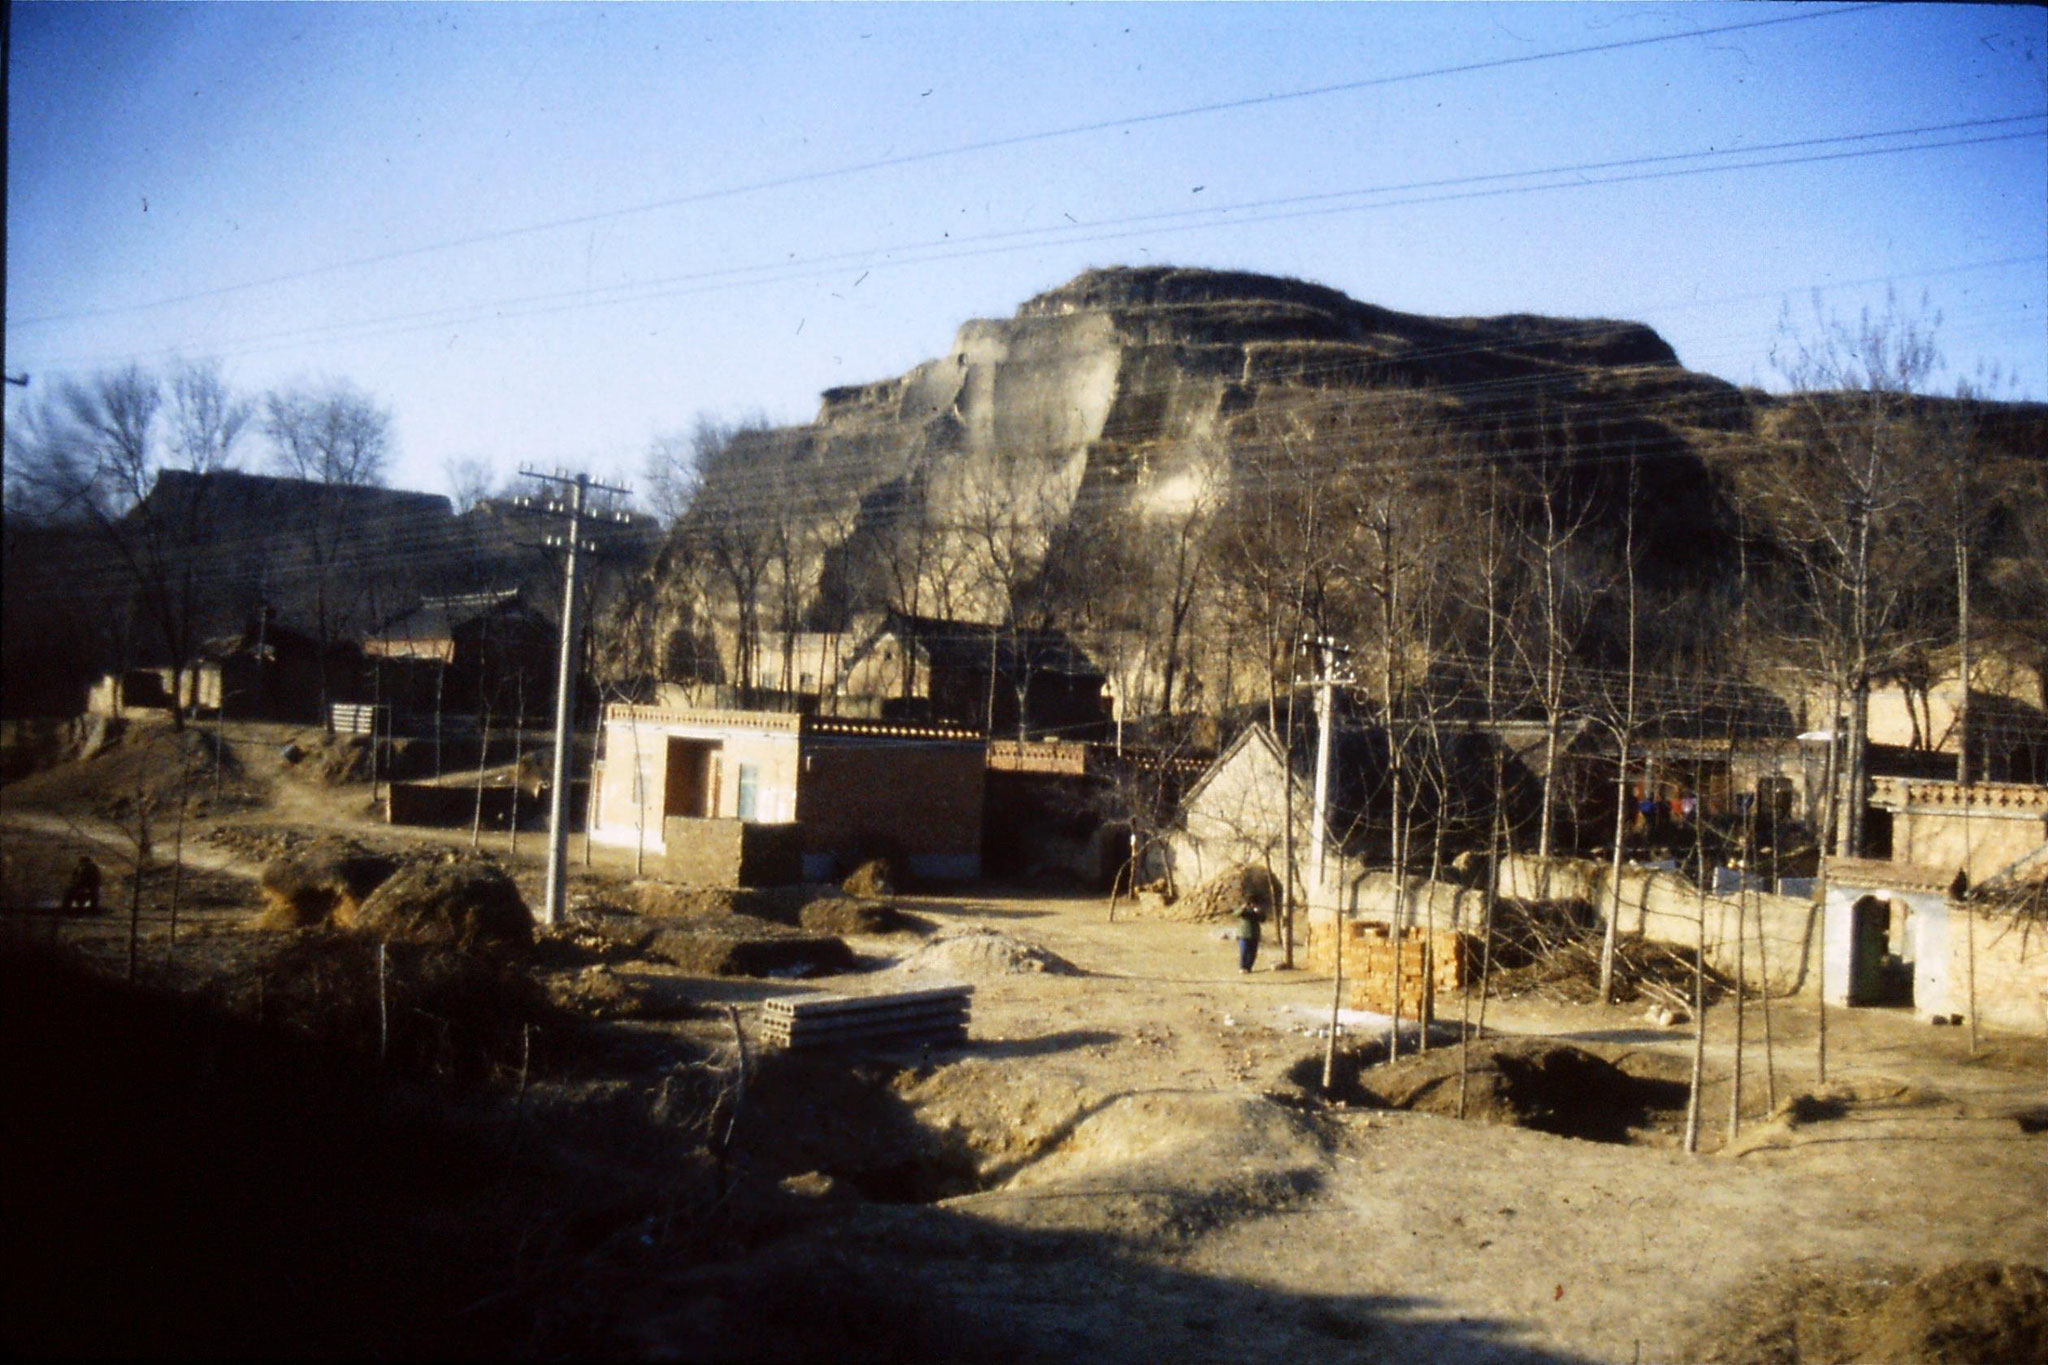 7/3/1989: 0: Journey Xian to Beijing, 0815 houses in loess cliff on edge of plain